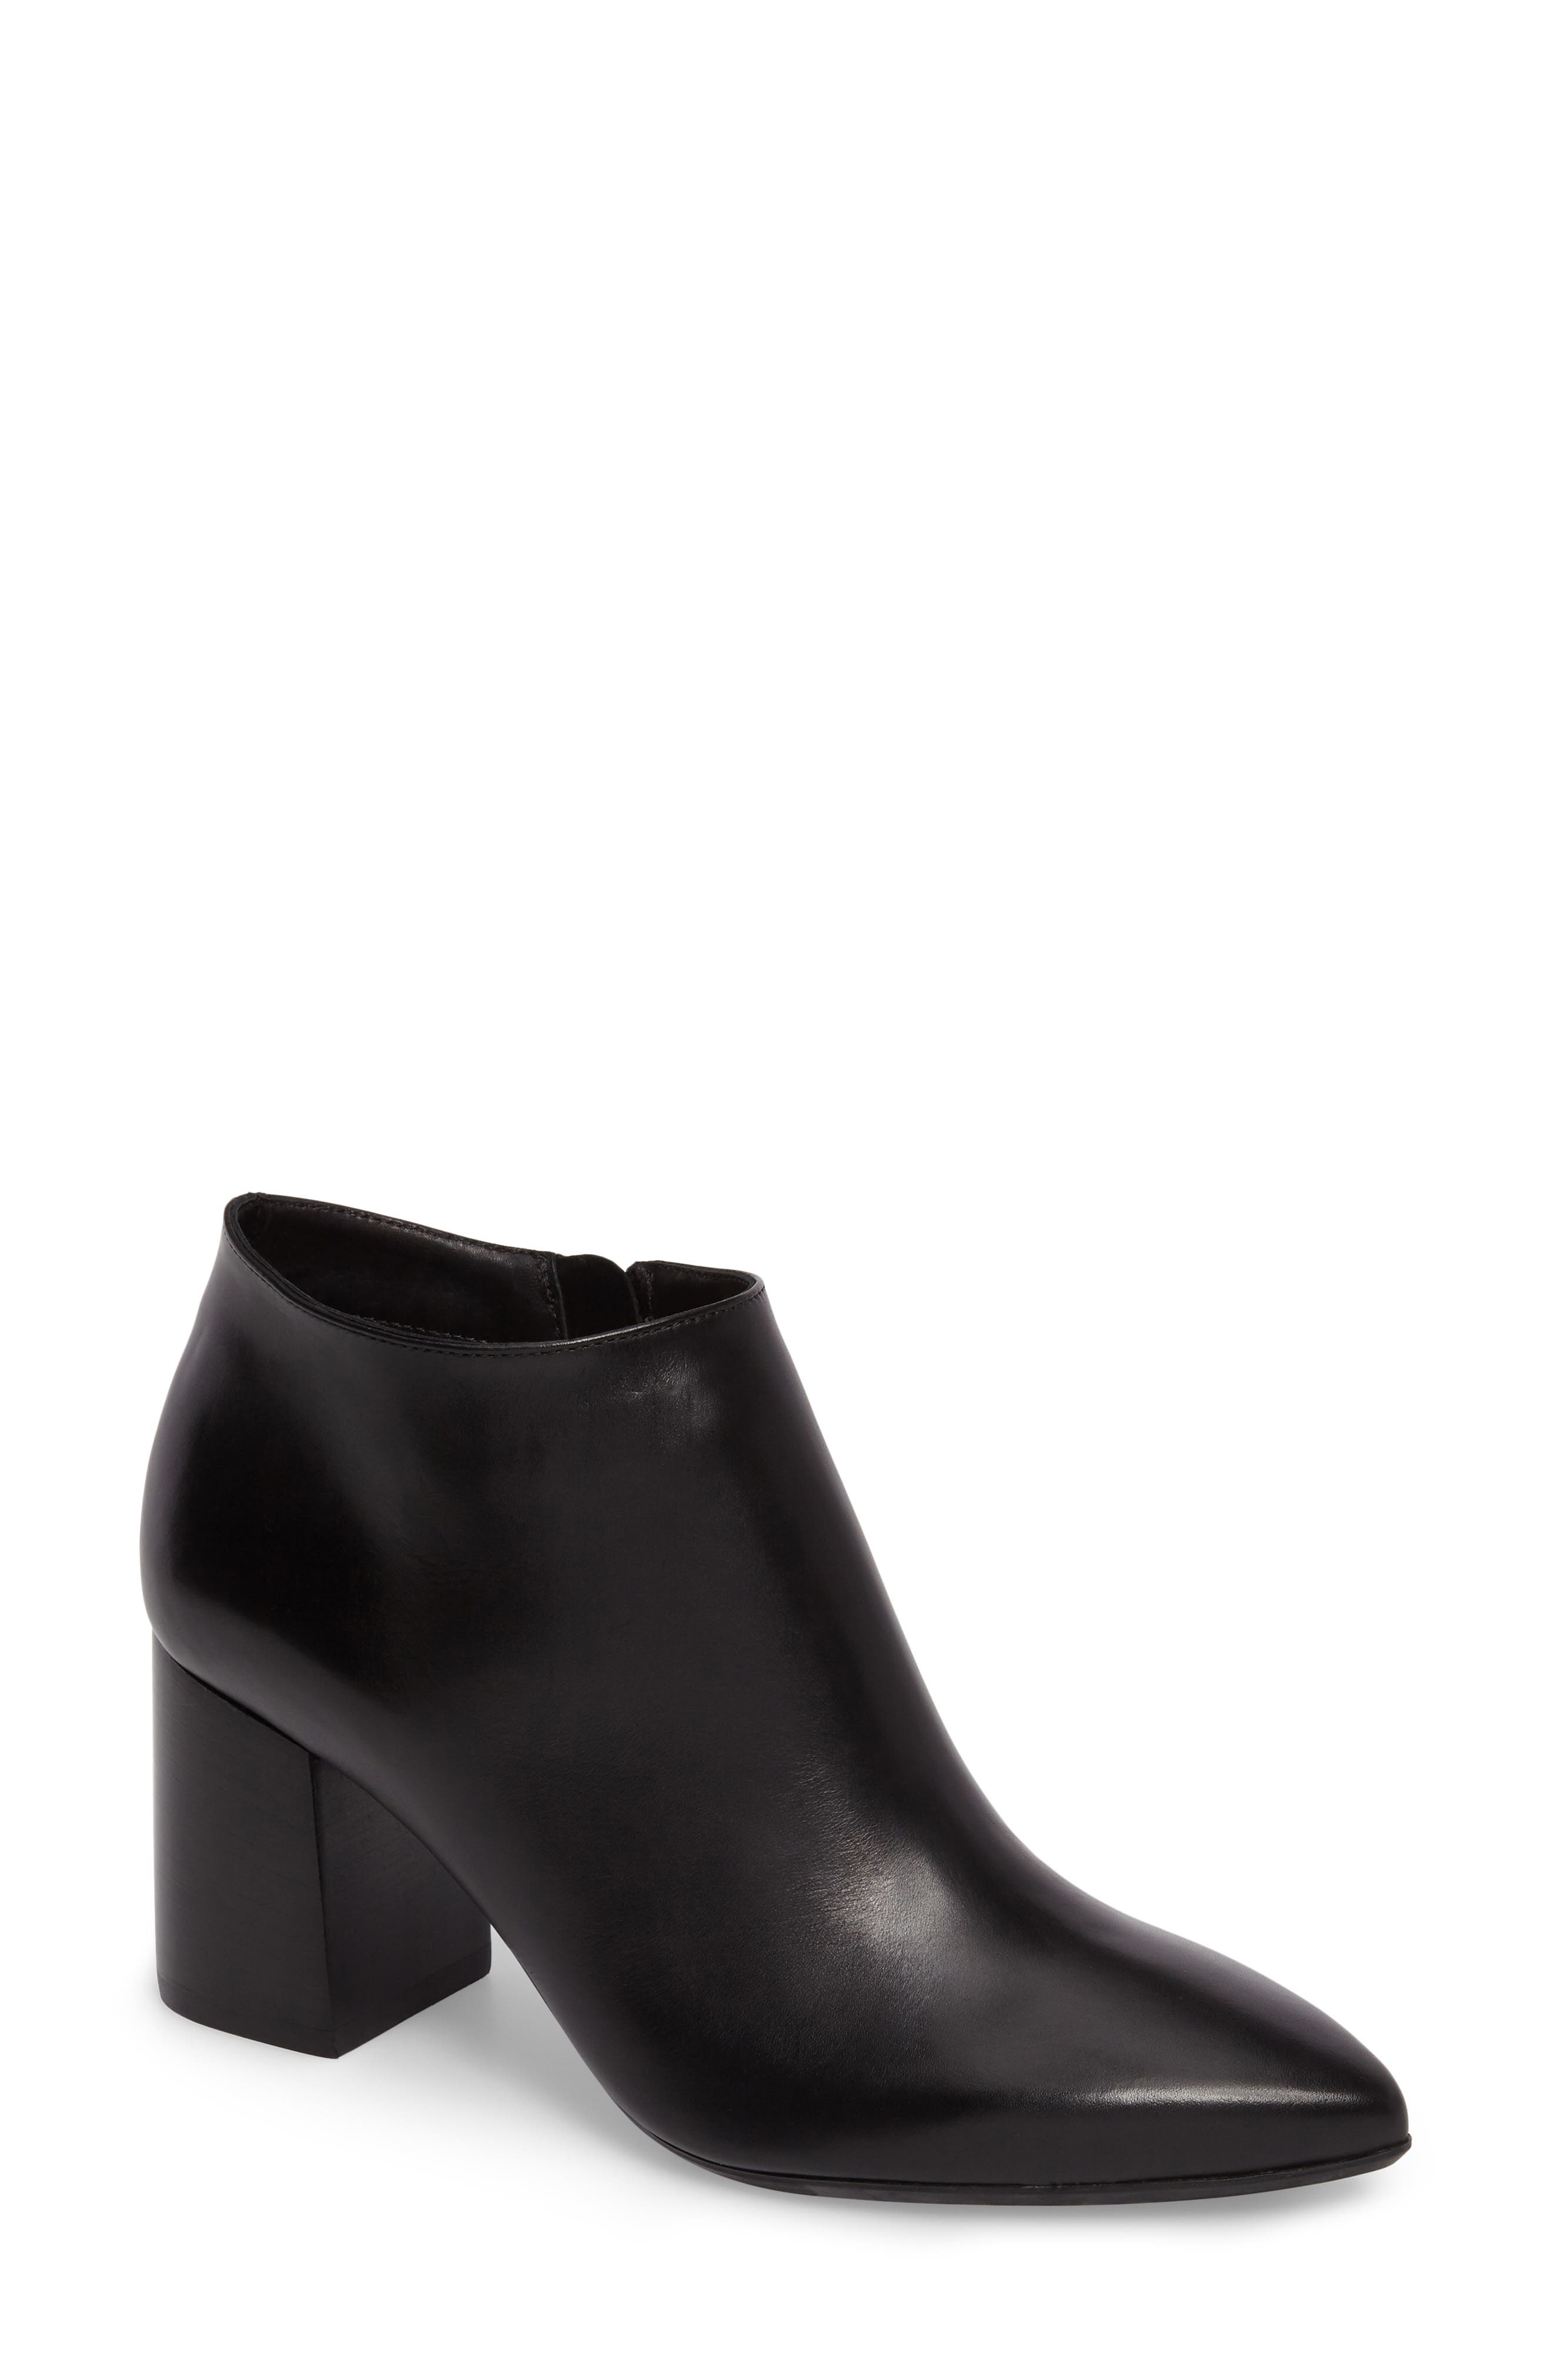 Maria Pointy Toe Bootie,                         Main,                         color, 001